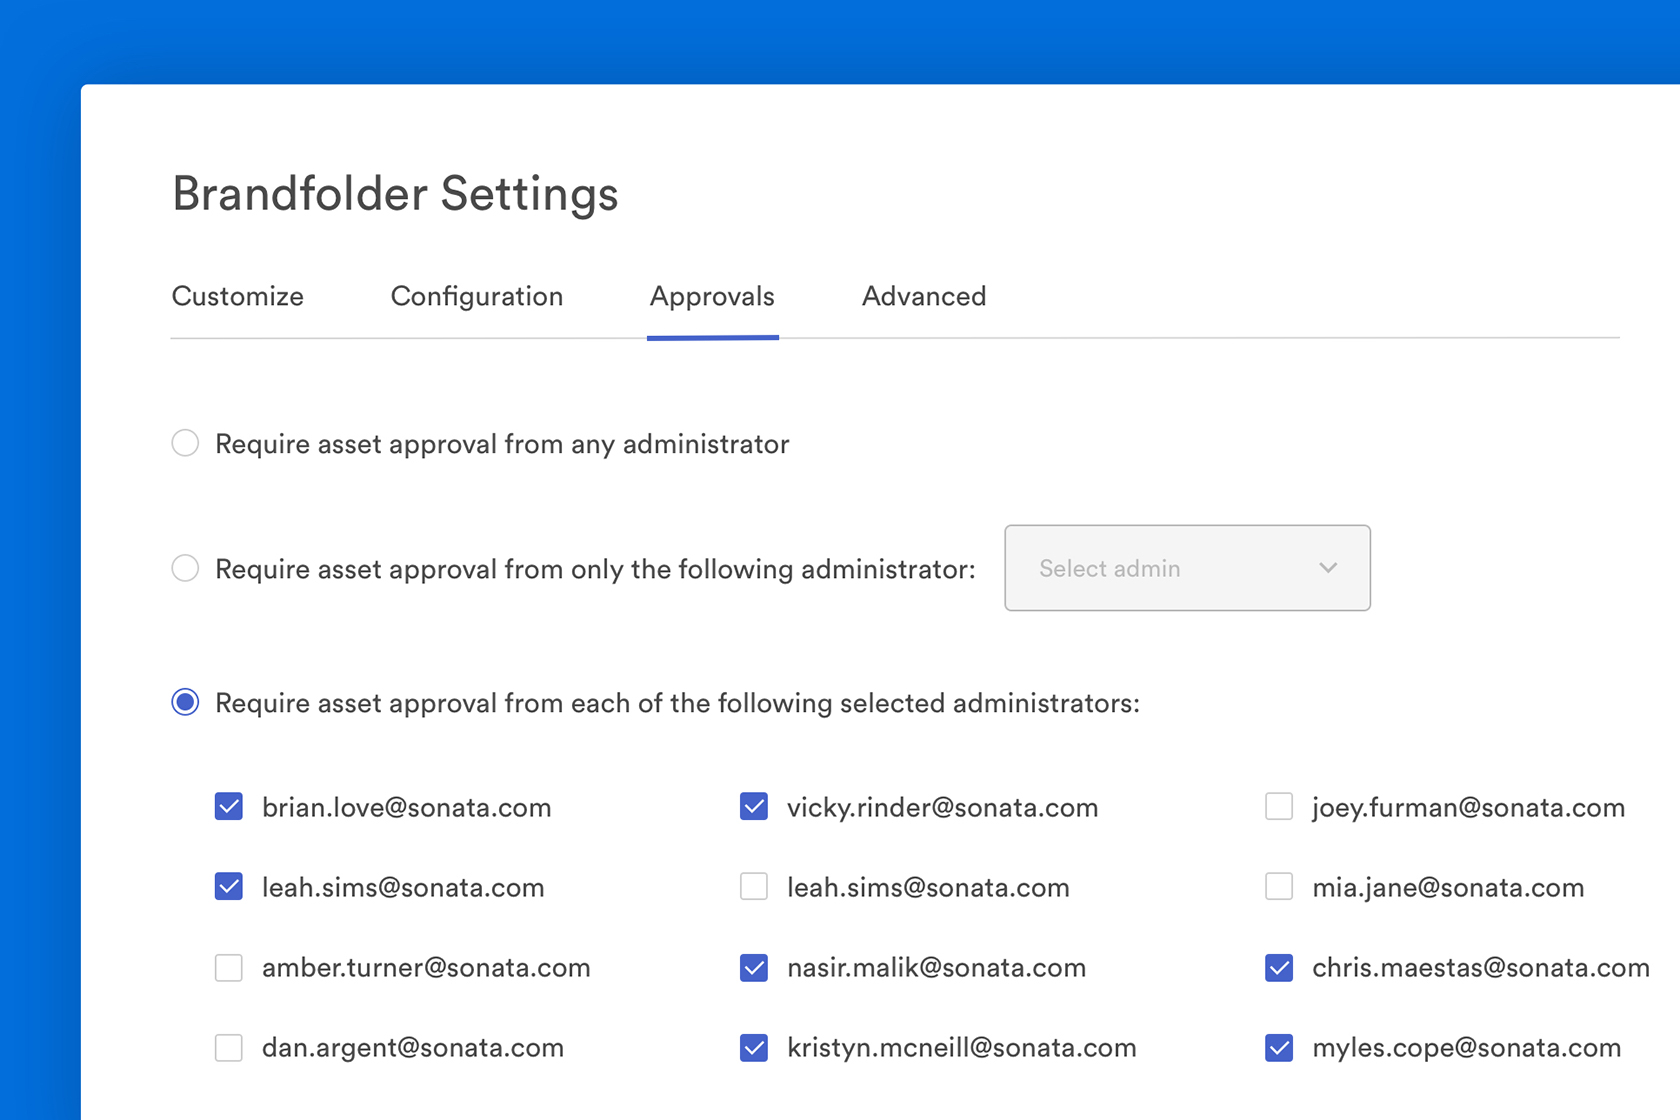 View of approval settings in Brandfolder